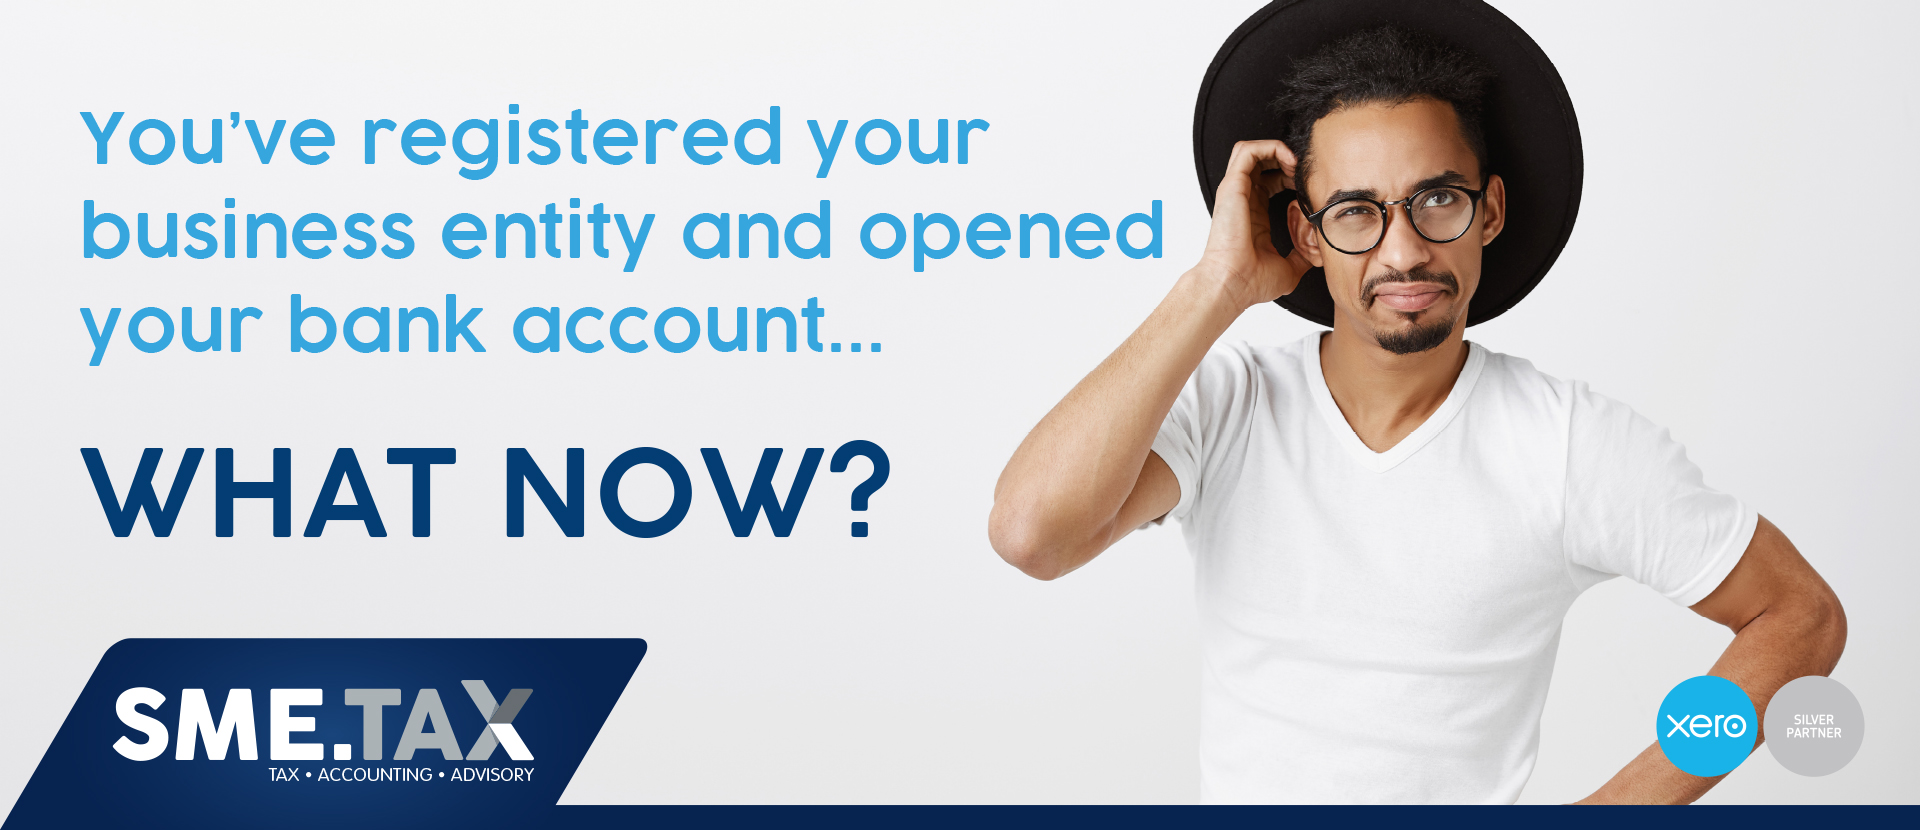 You've registered your business entity and opened your bank account... WHAT NOW? 2